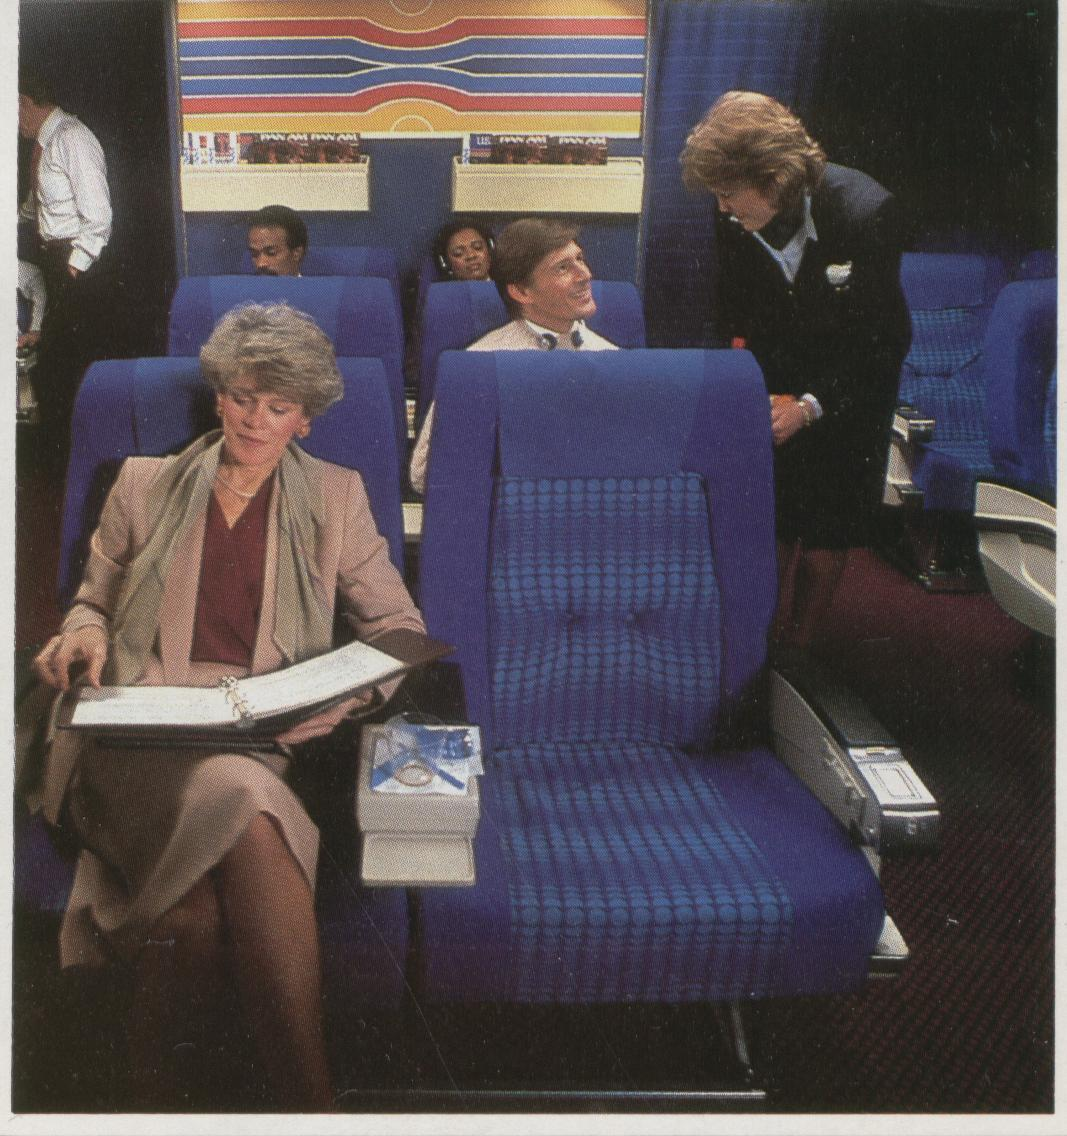 1985 When Pan Am converted the Clipper Class (Business Class) cabin from 8 across to 6 across seating bright blue seat covers were adopted as seen in this photo.  In 1988 Pan Am converted the business class  seat covers to a more demure herringbone pattern.